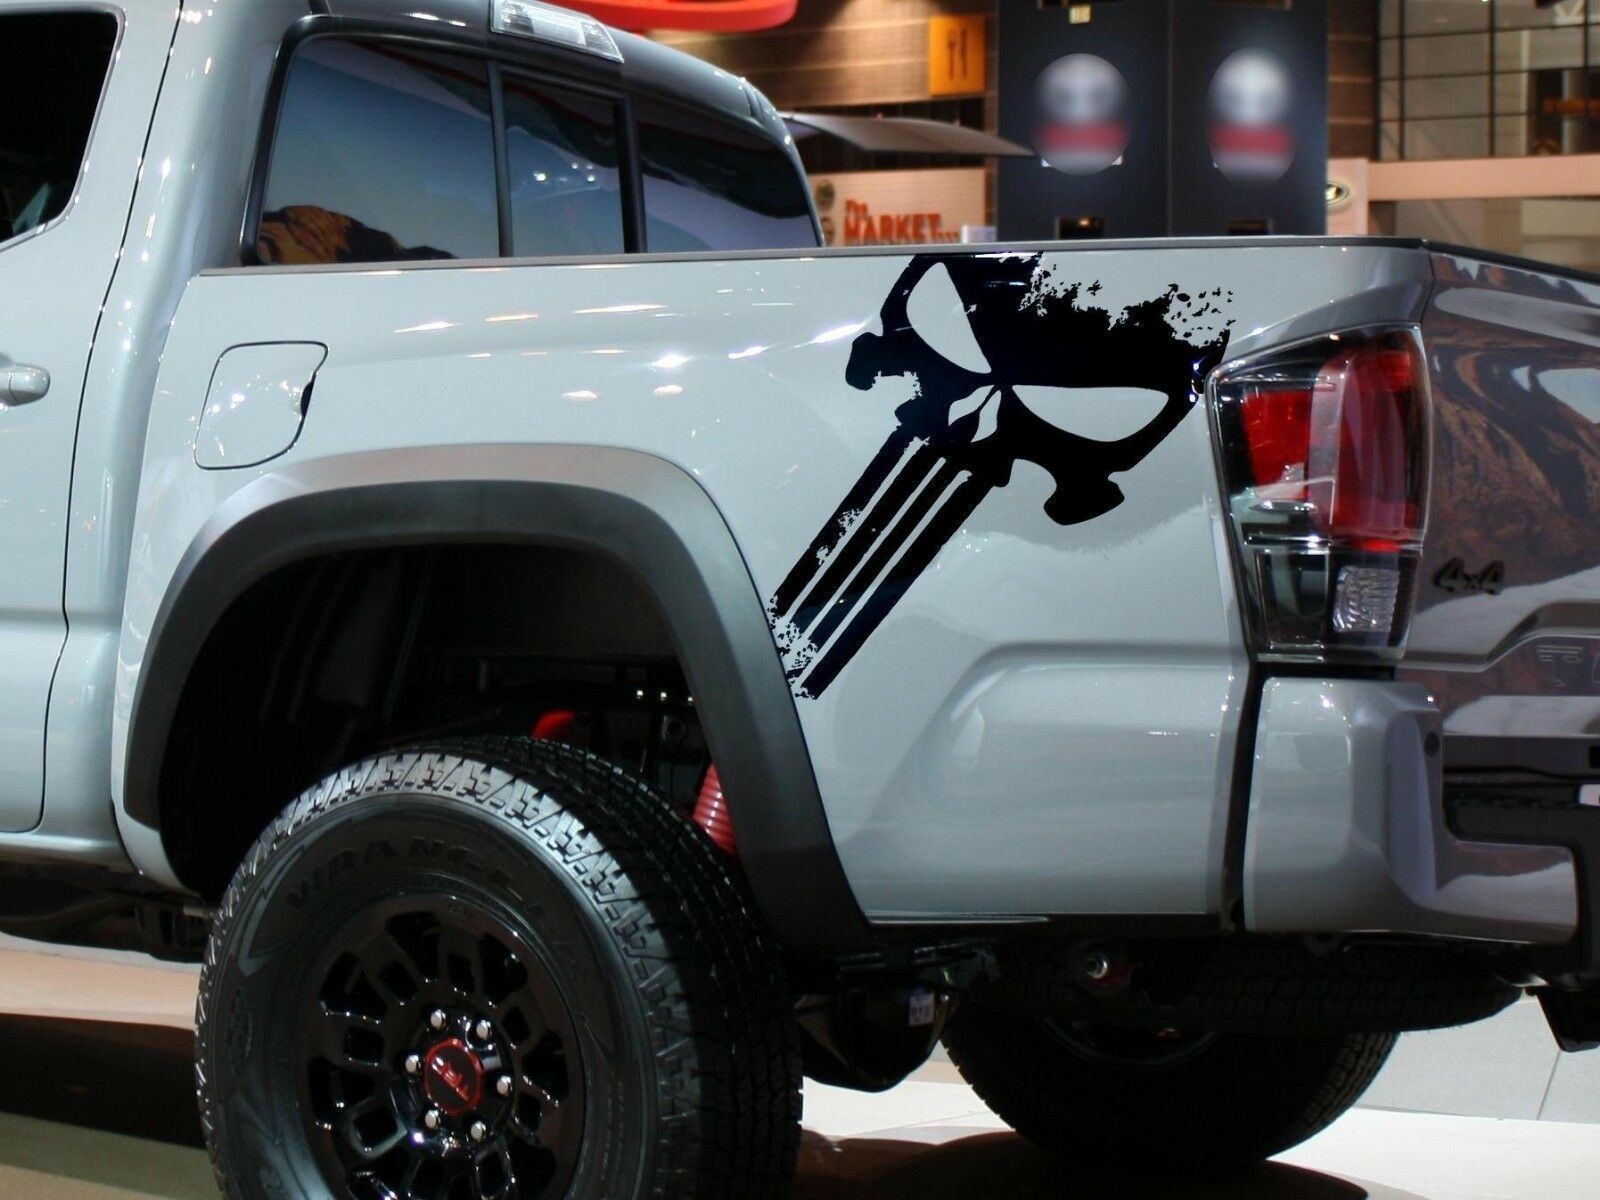 TRD PUNISHER EDITION Decals Toyota Tacoma Tundra Truck Vinyl Stickers 2